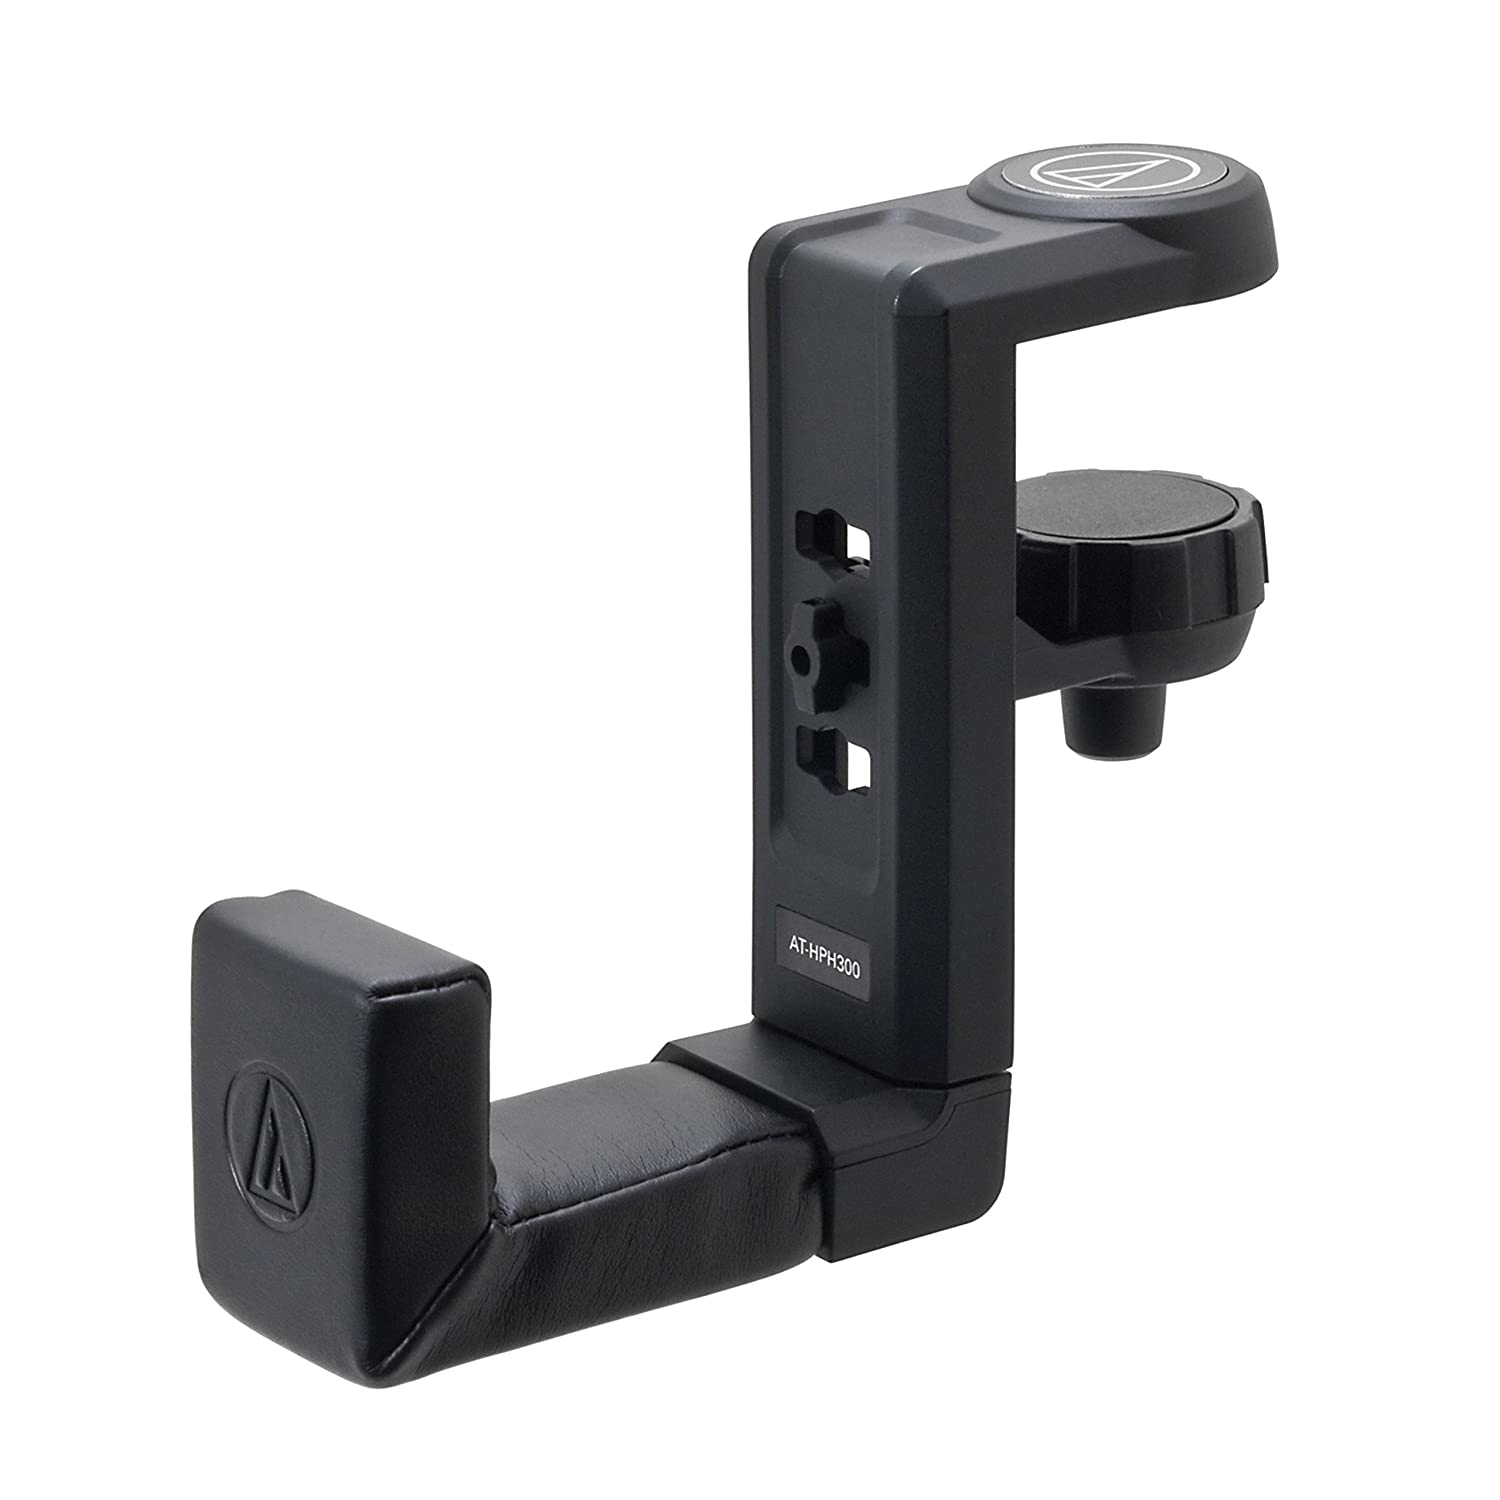 Audio-Technica AT-HPH300 Headphone Hanger Accessory